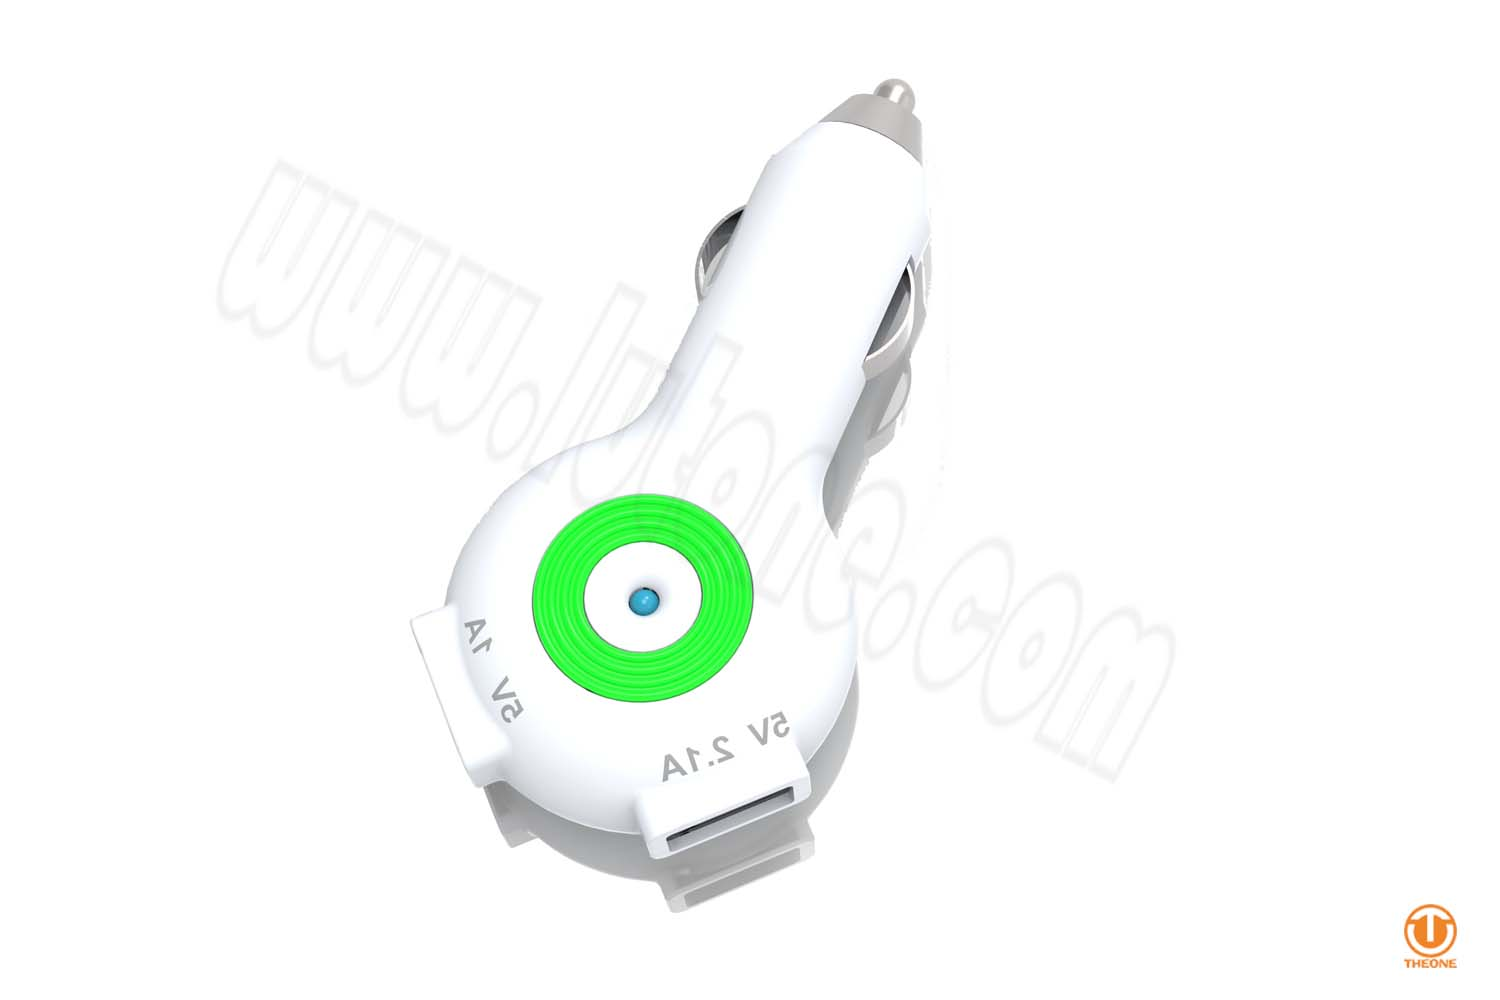 tc01a1-3 dual usb car charger